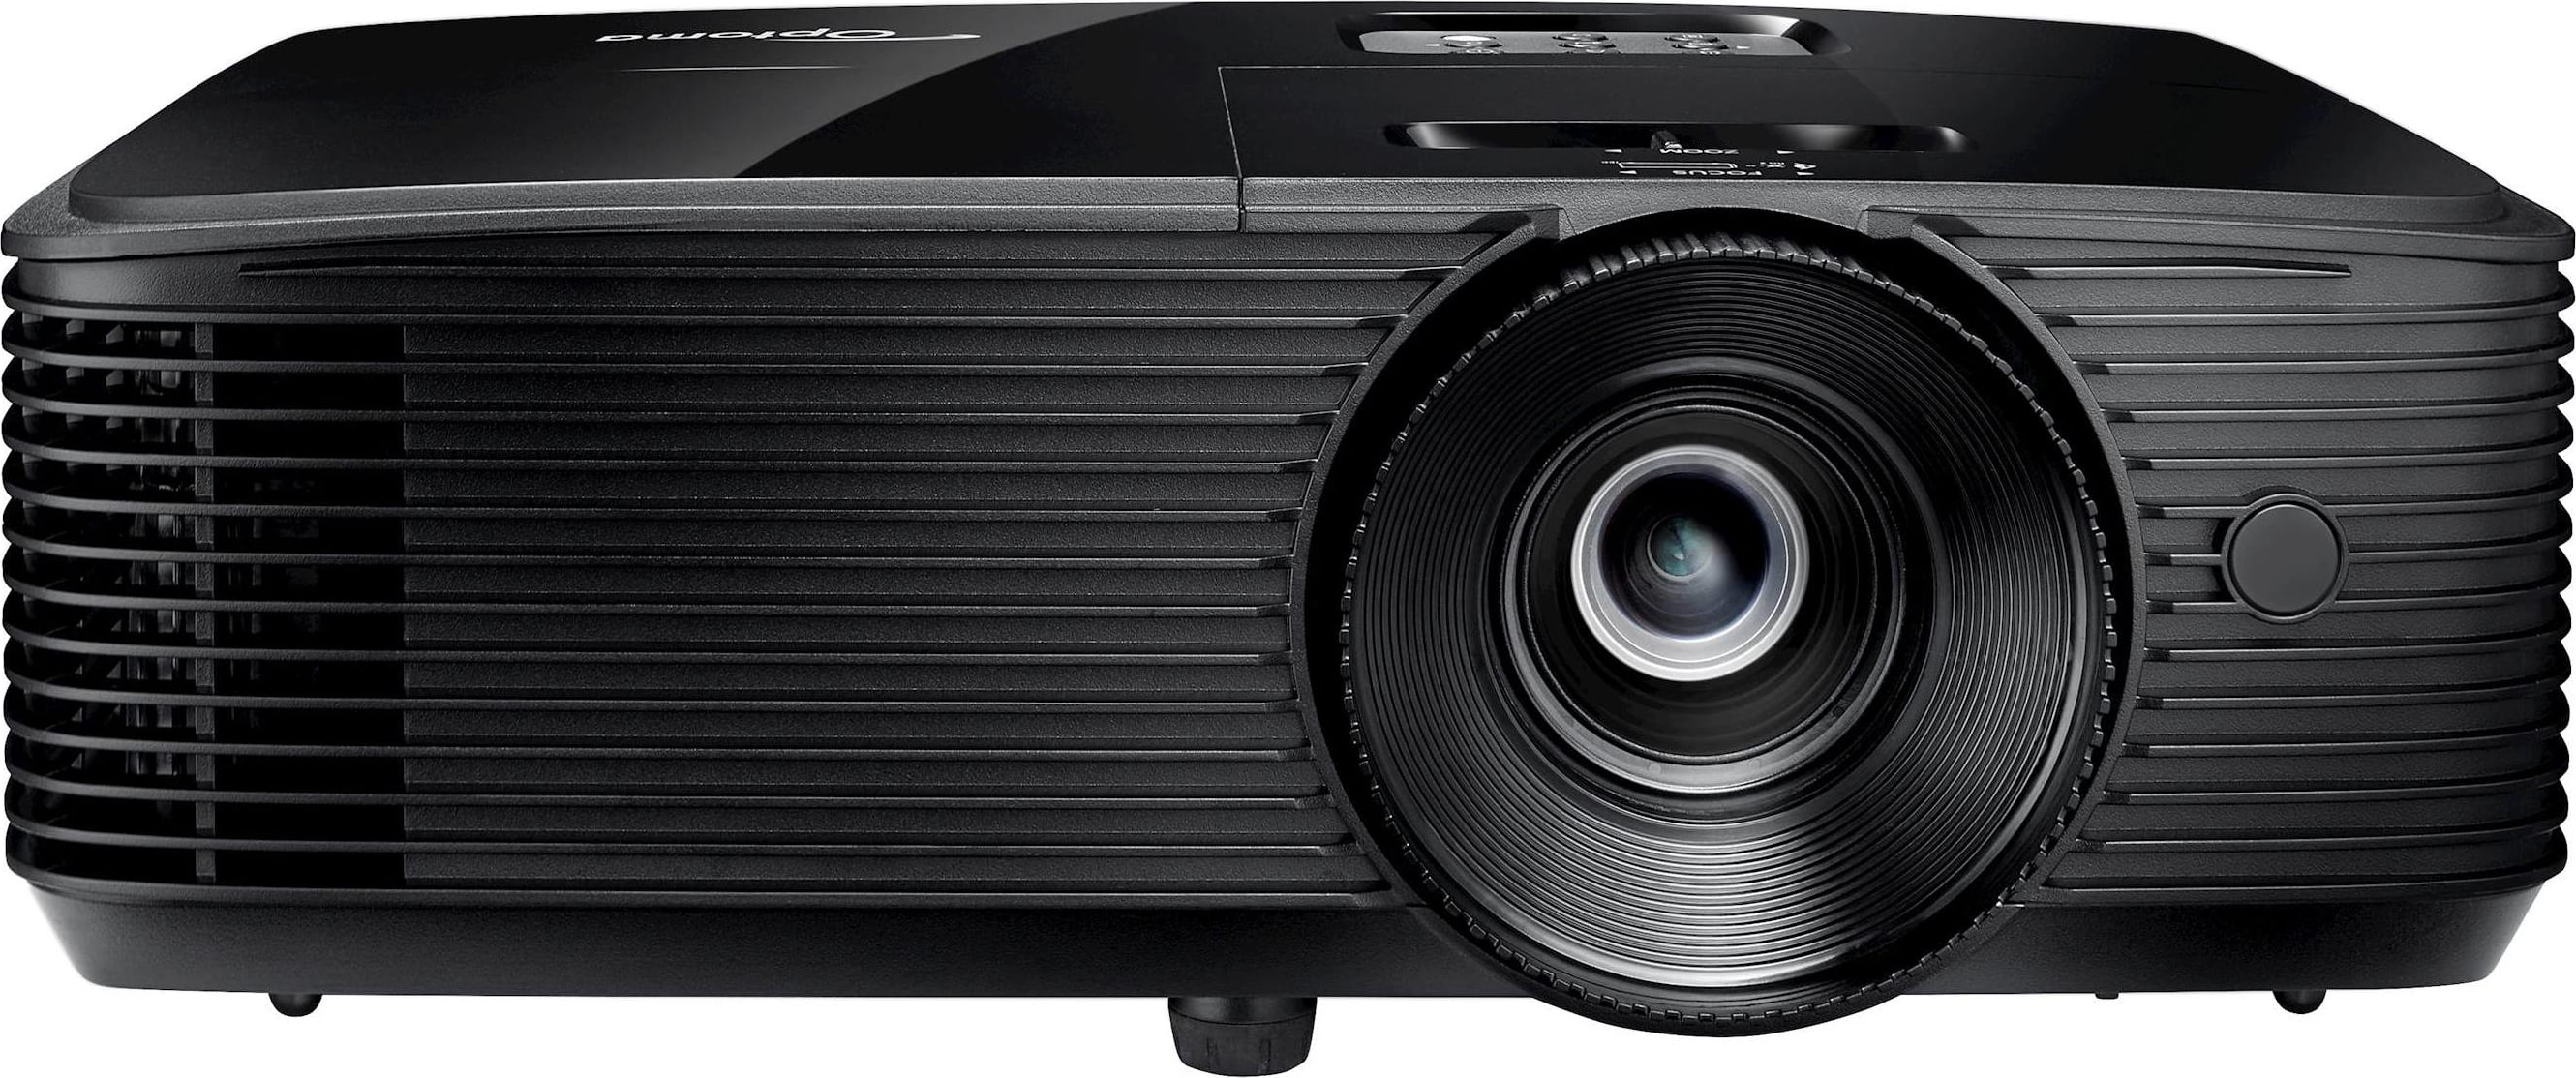 Optoma HD146X - Home Theater Projector, 1080p 3600 Lumens (Black)